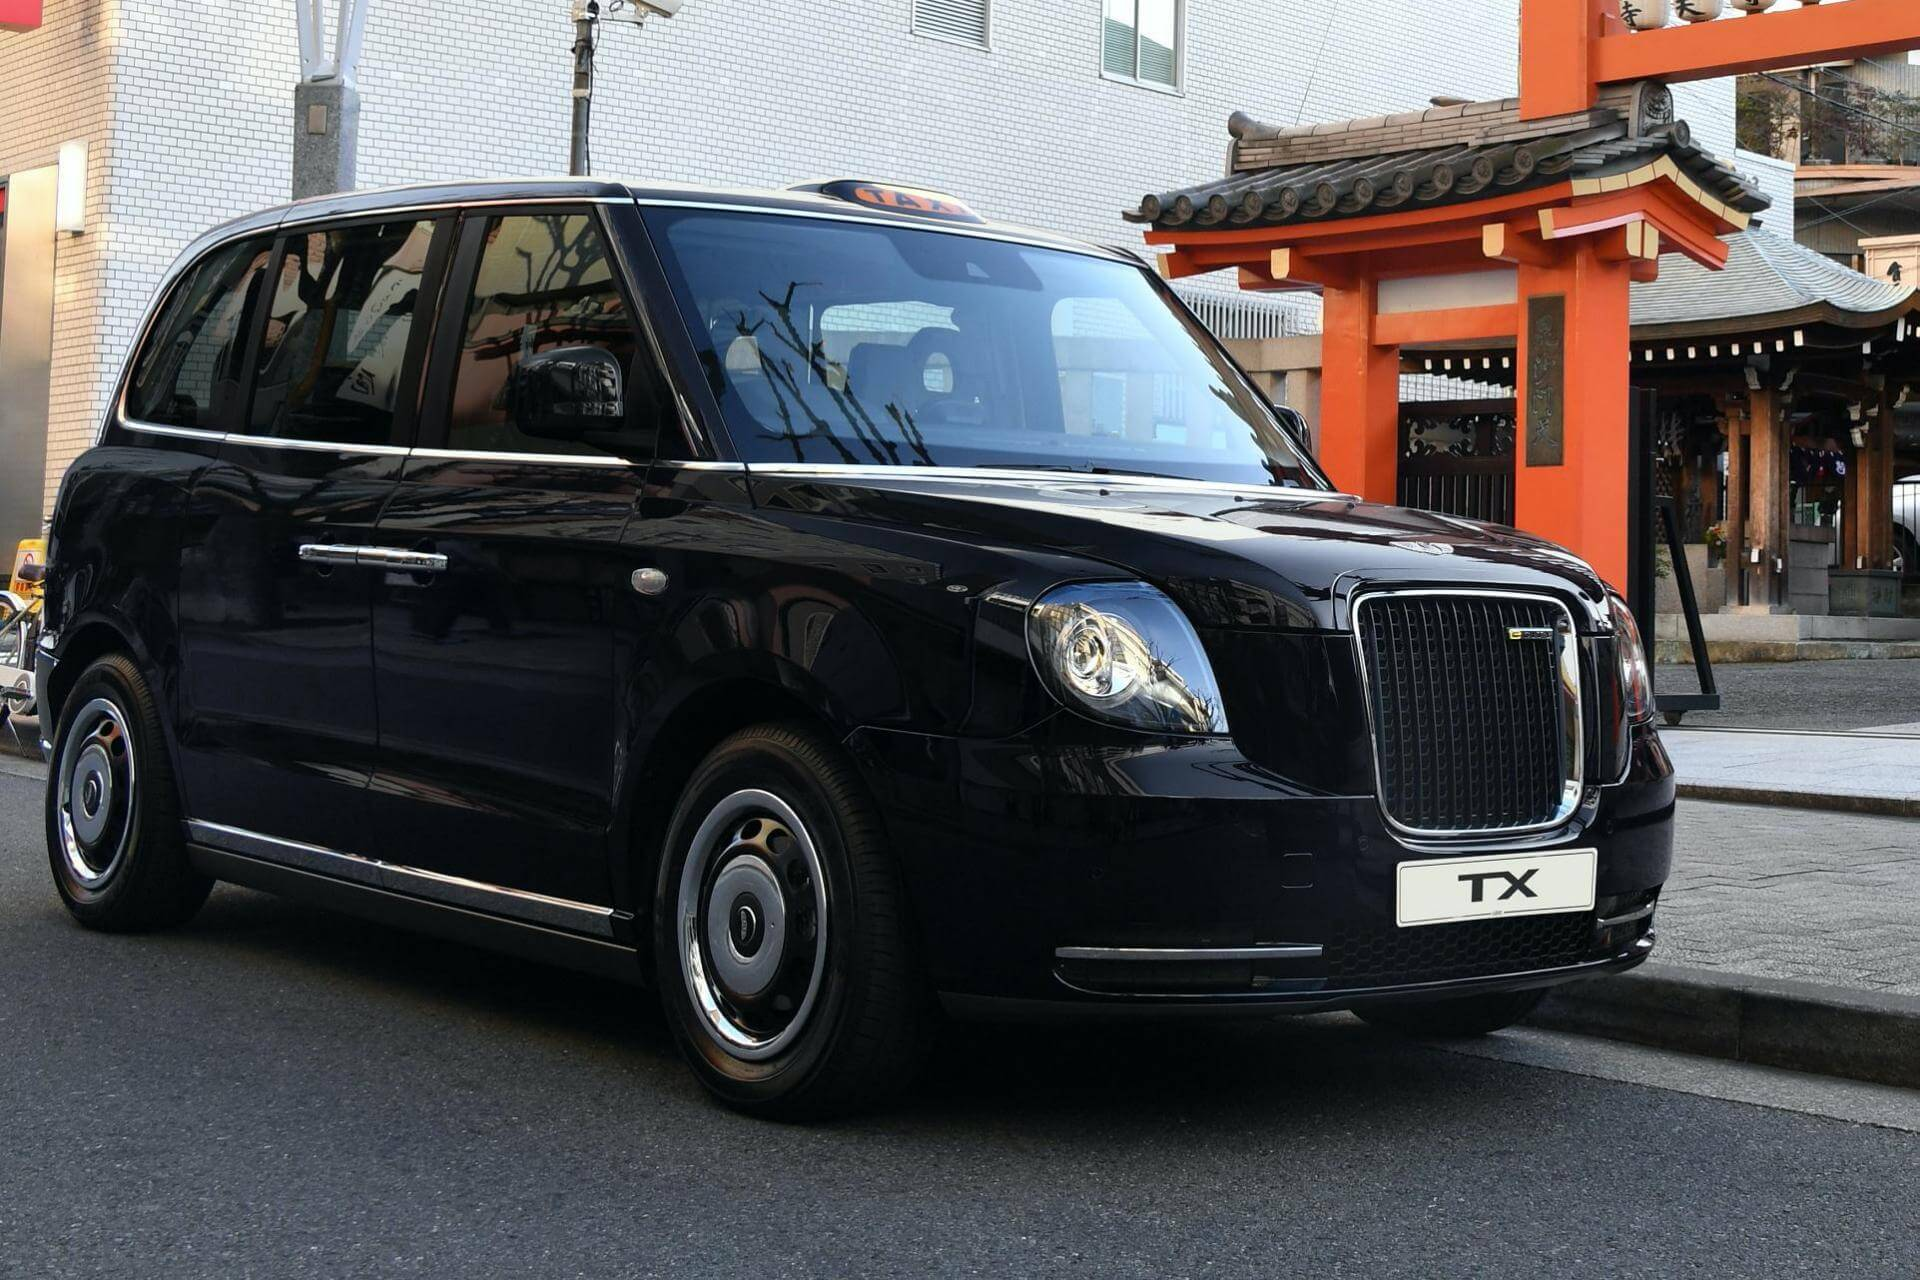 Manchester taxi service LEVC TX